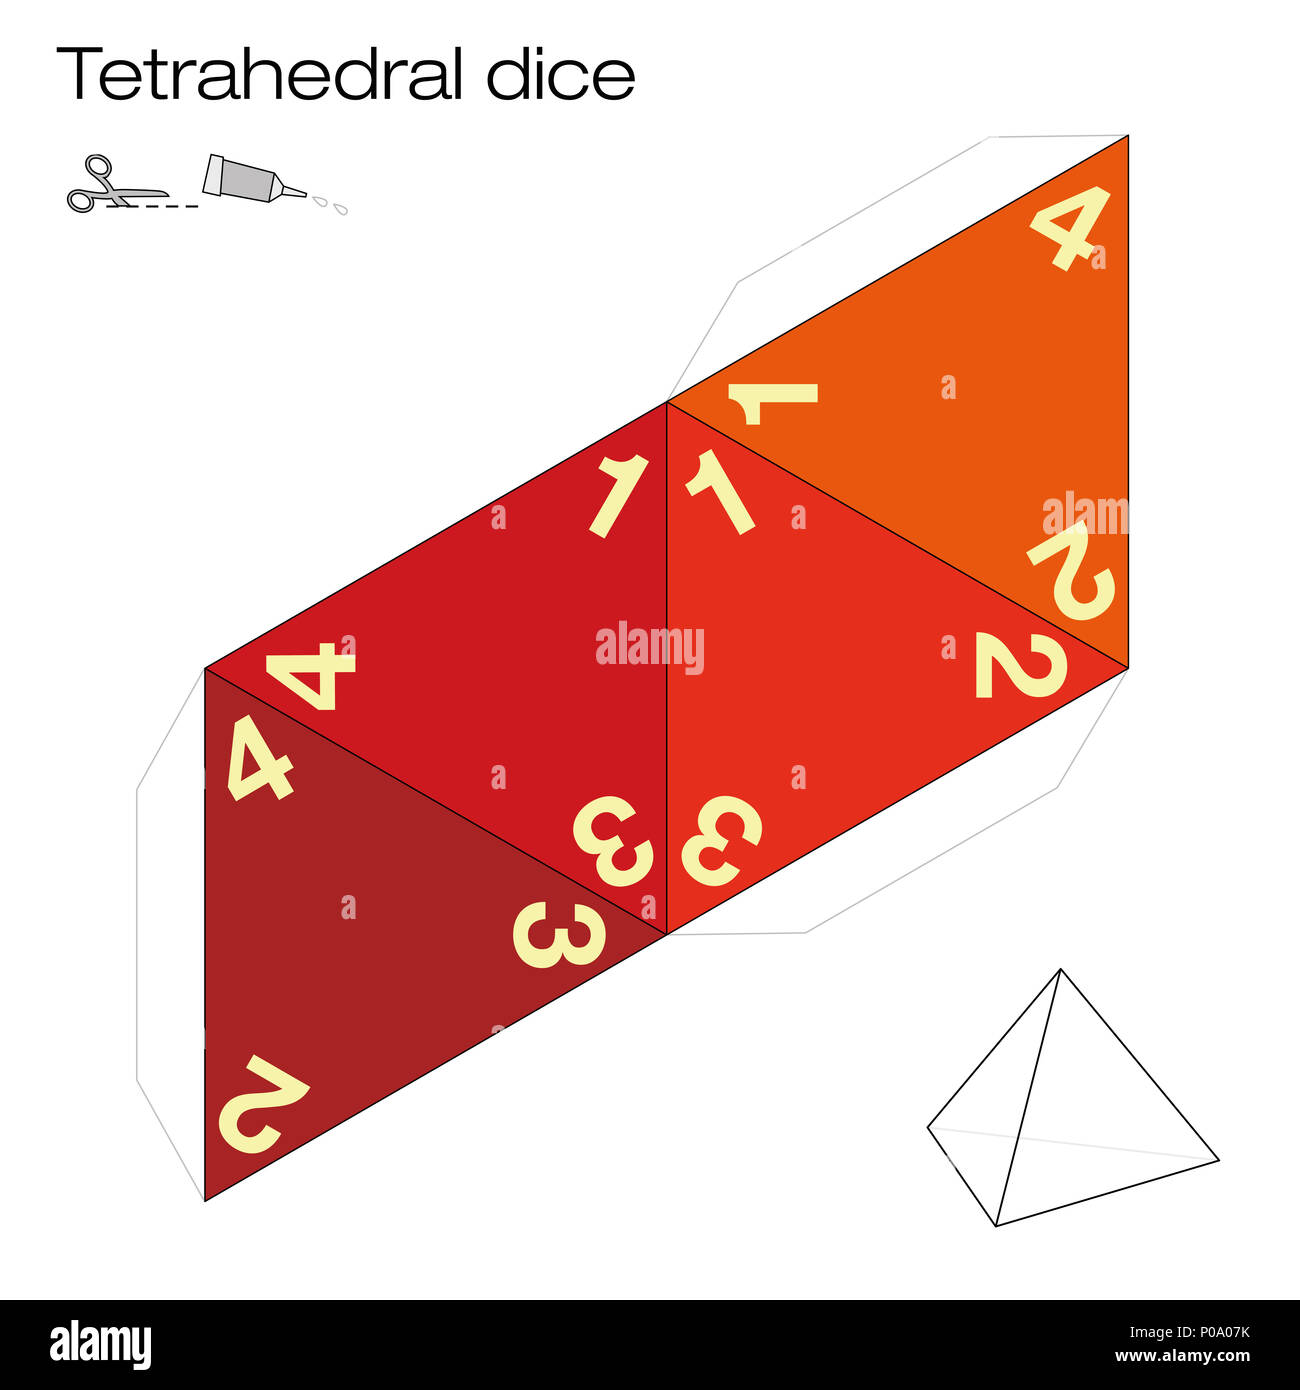 Tetrahedron template, four sided tetrahedral dice - one of the five platonic solids - make a 3d item out the net and play dice. Illustration o Stock Photo